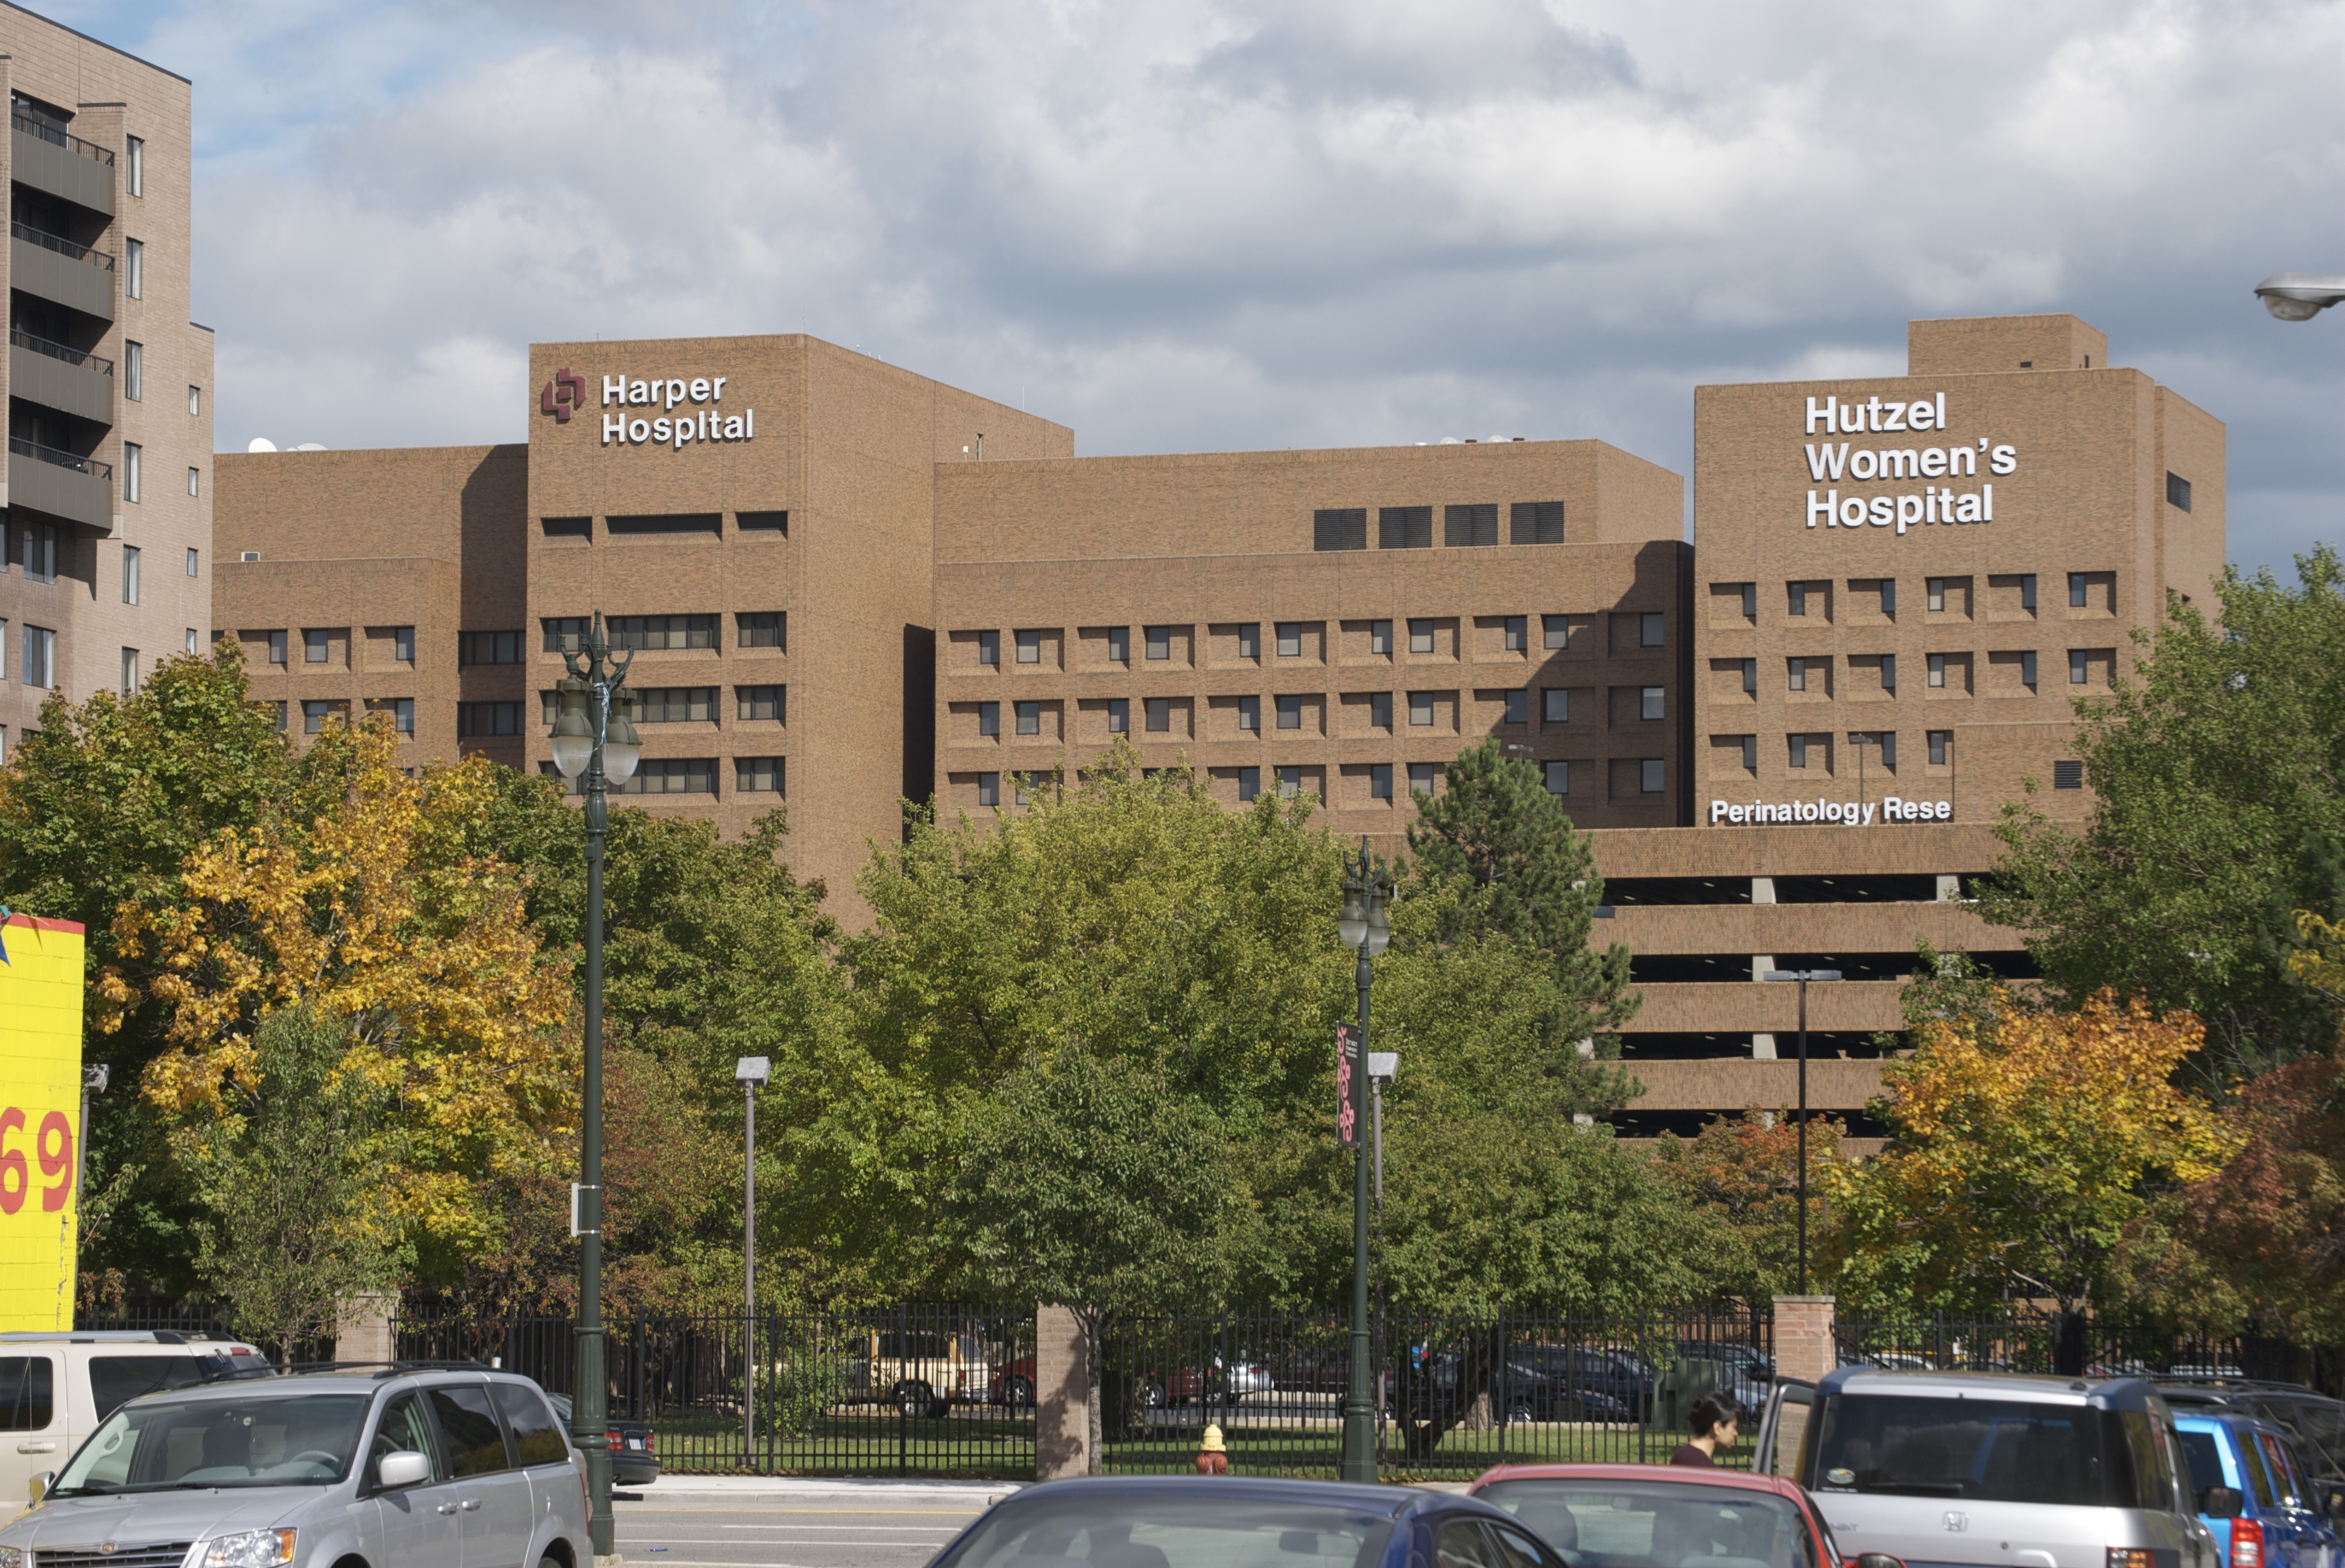 Detroit Medical Center - Wikipedia